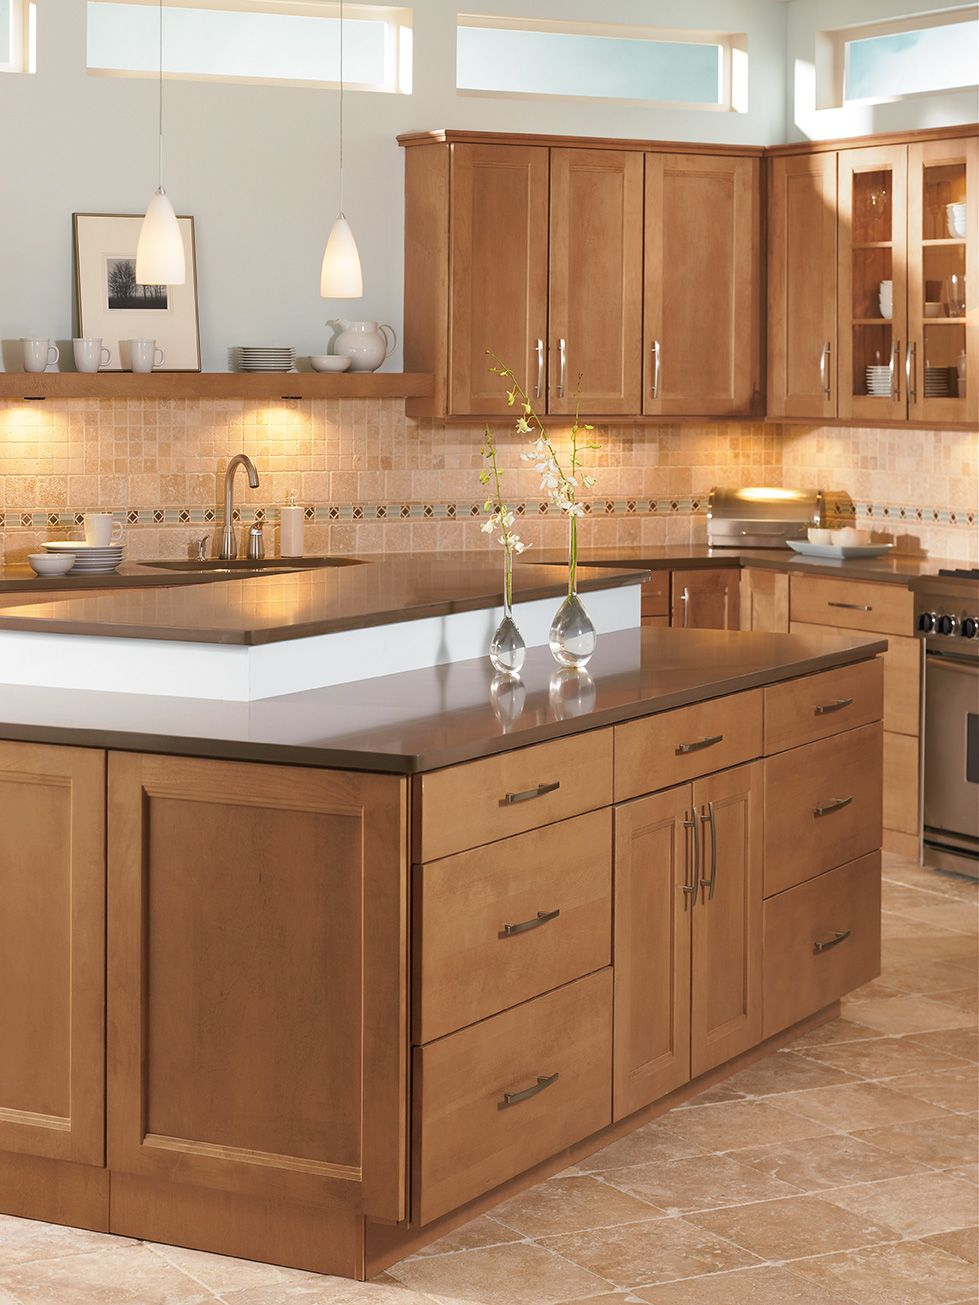 Shenandoah Cabinetry, island in Solana Spice | Kitchen Islands ...